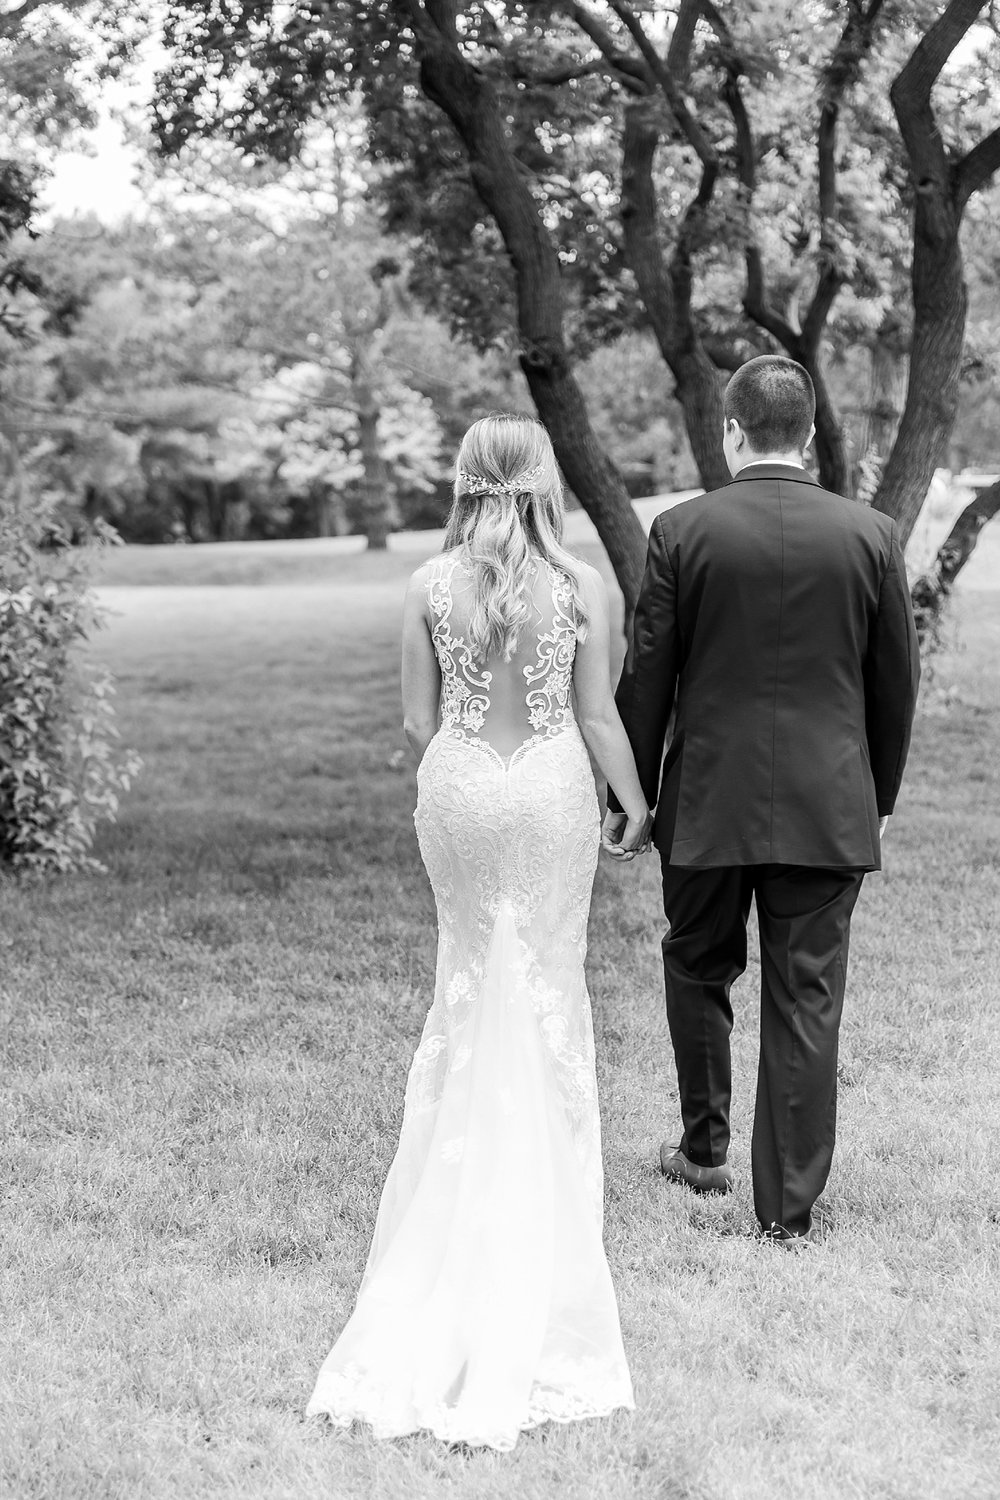 candid-romantic-wedding-photos-at-the-h-hotel-in-midland-michigan-by-courtney-carolyn-photography_0053.jpg